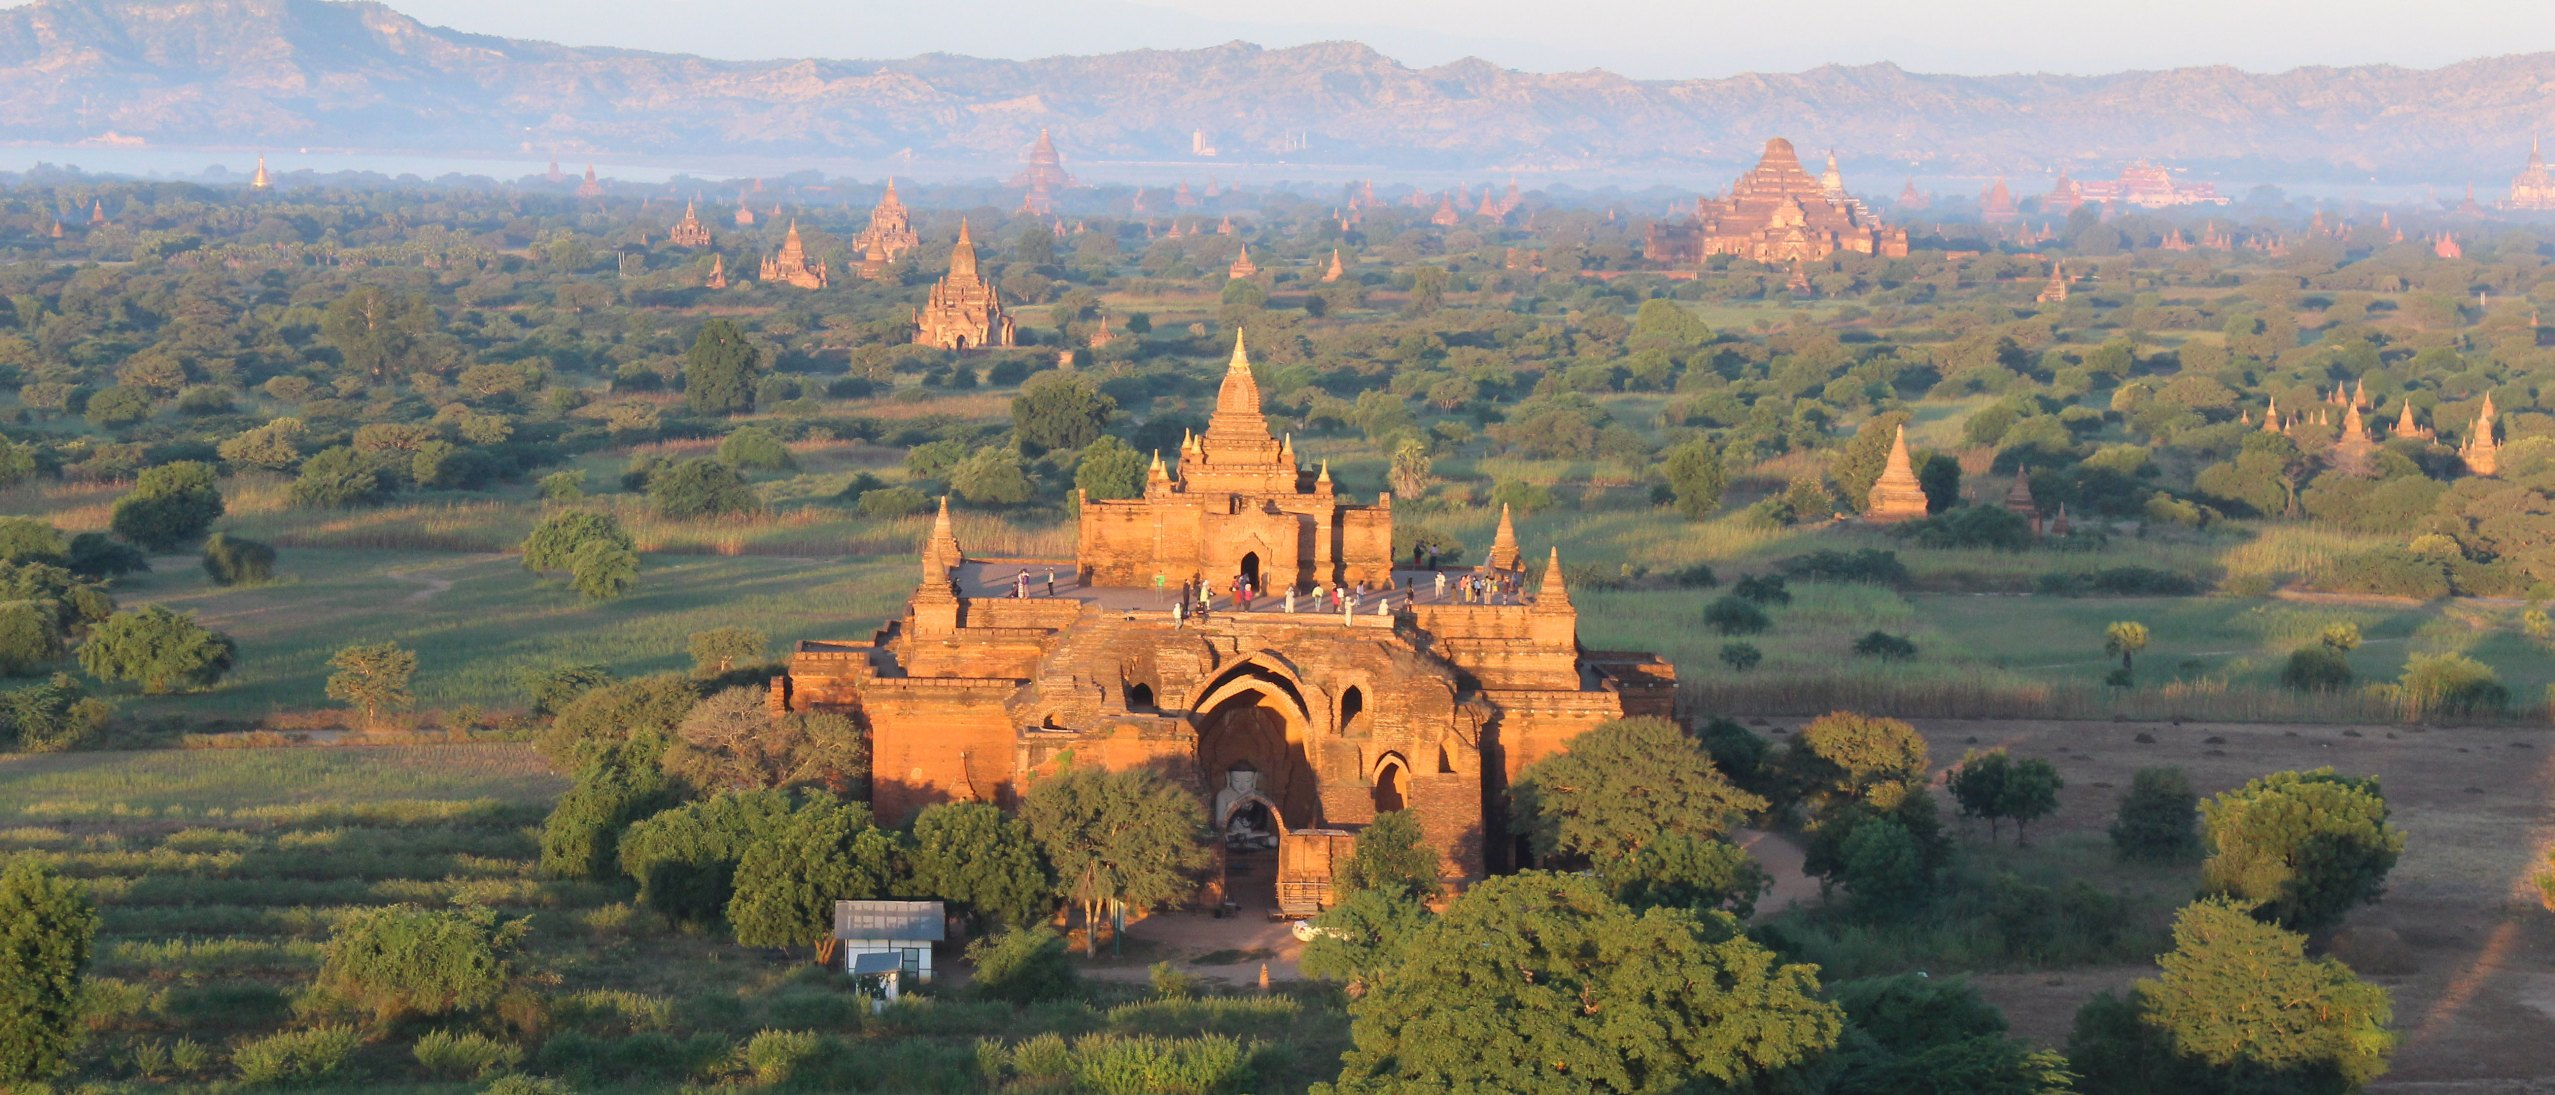 photograph of Bagan